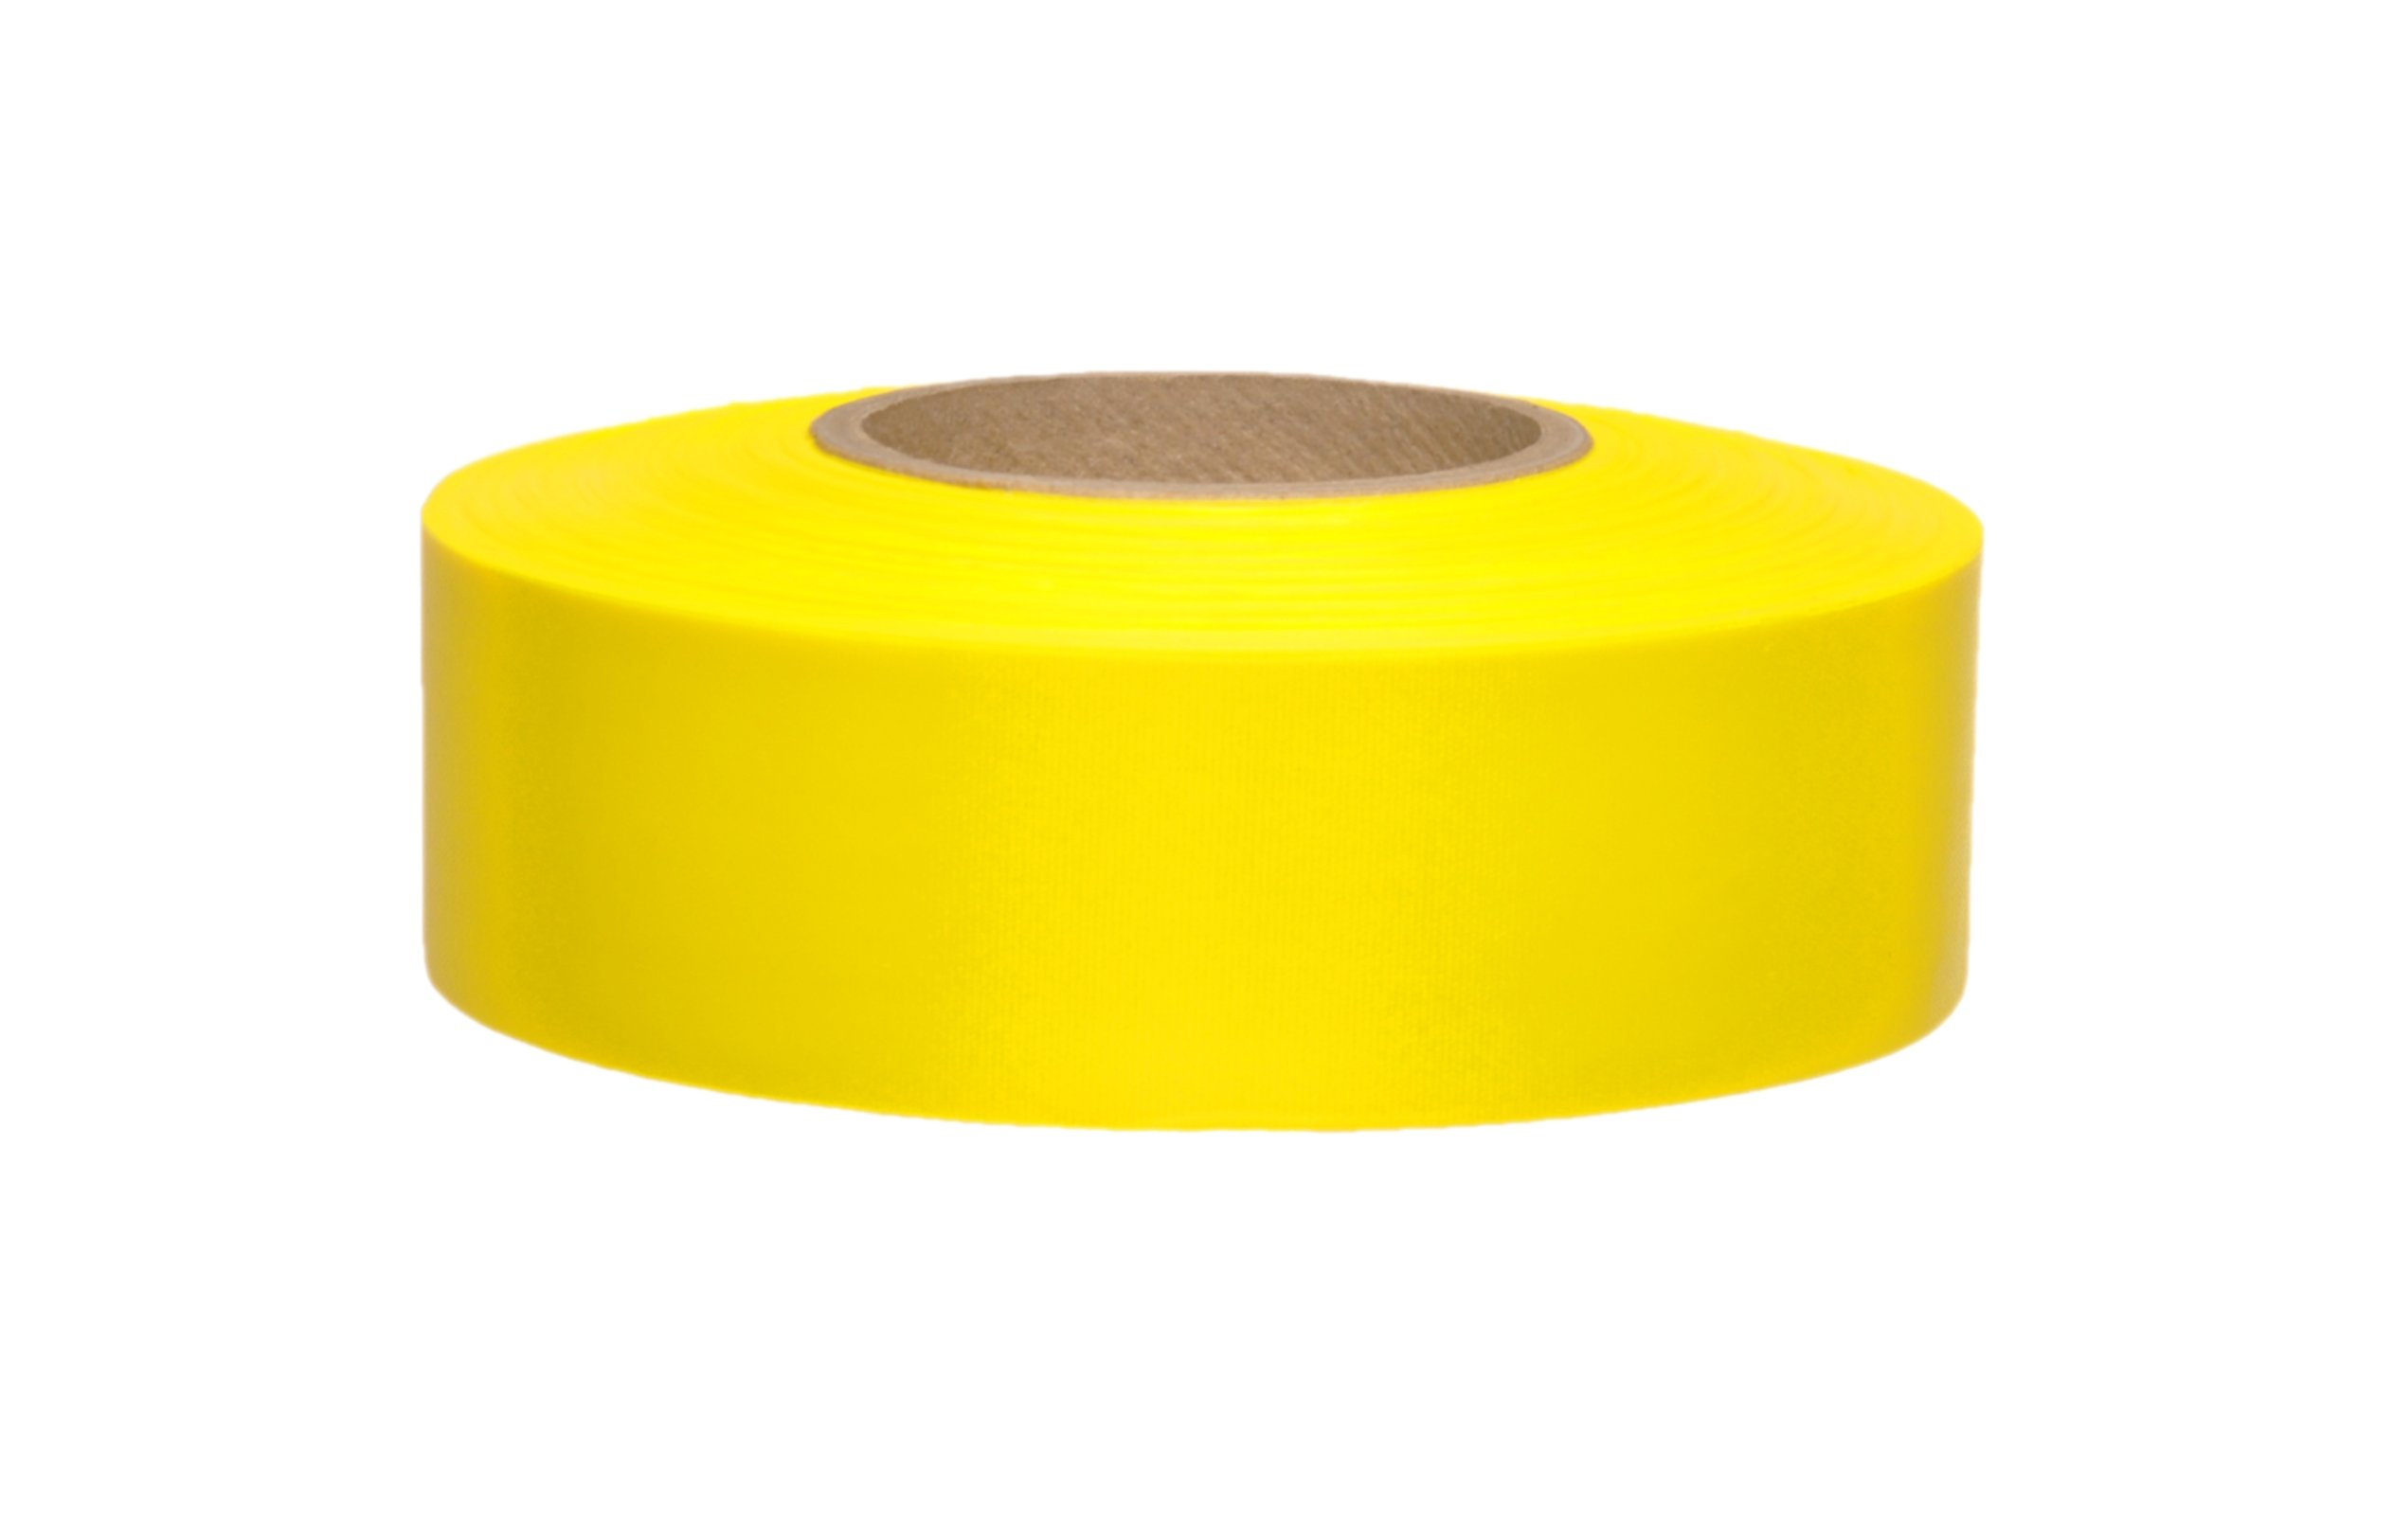 Presco TFYG-658 150' Length x 1-3/16'' Width, PVC Film, Taffeta Yellow Glo Solid Color Roll Flagging (Pack of 144)